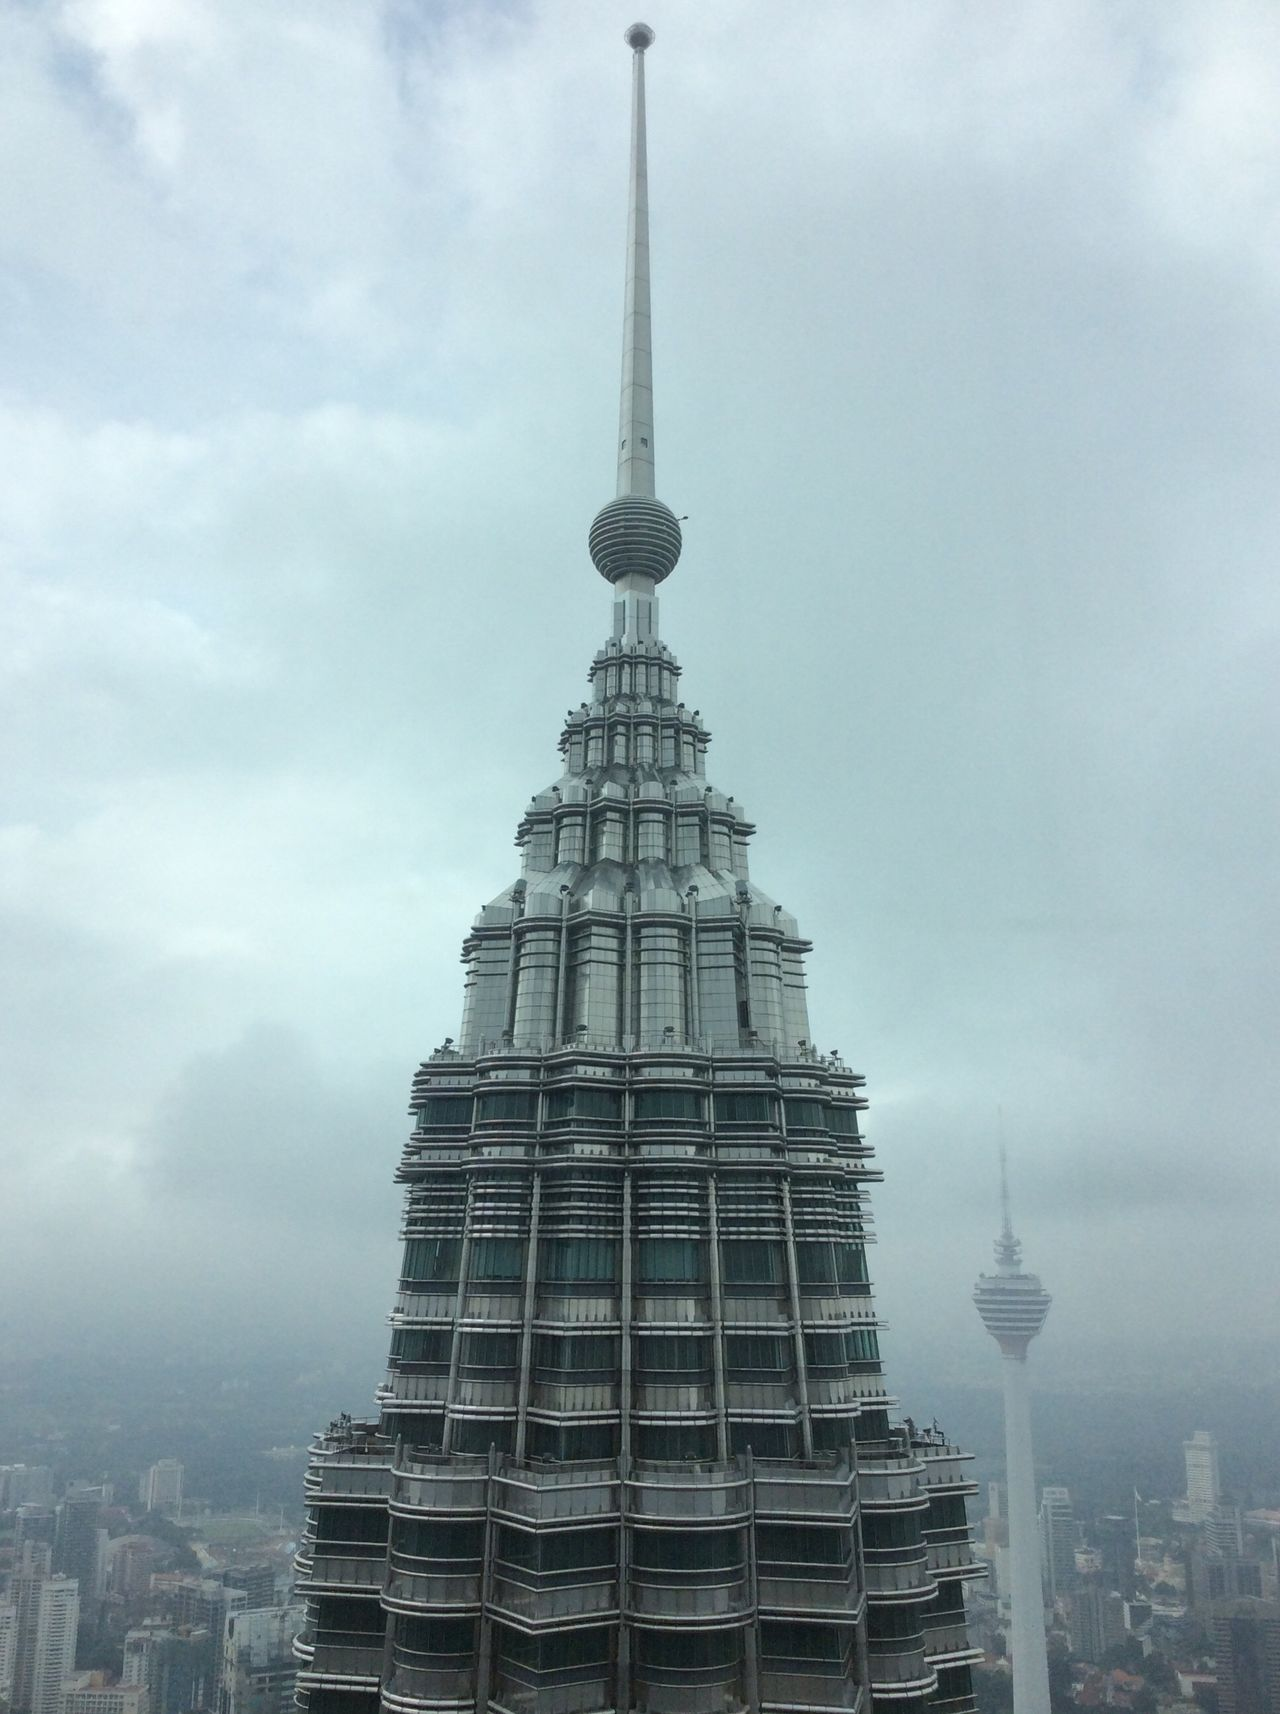 Top of the Patronas Twin Tower Modern Contemporary Architecture with KL tower in the background Grey Skies Pinnicle City Landscape